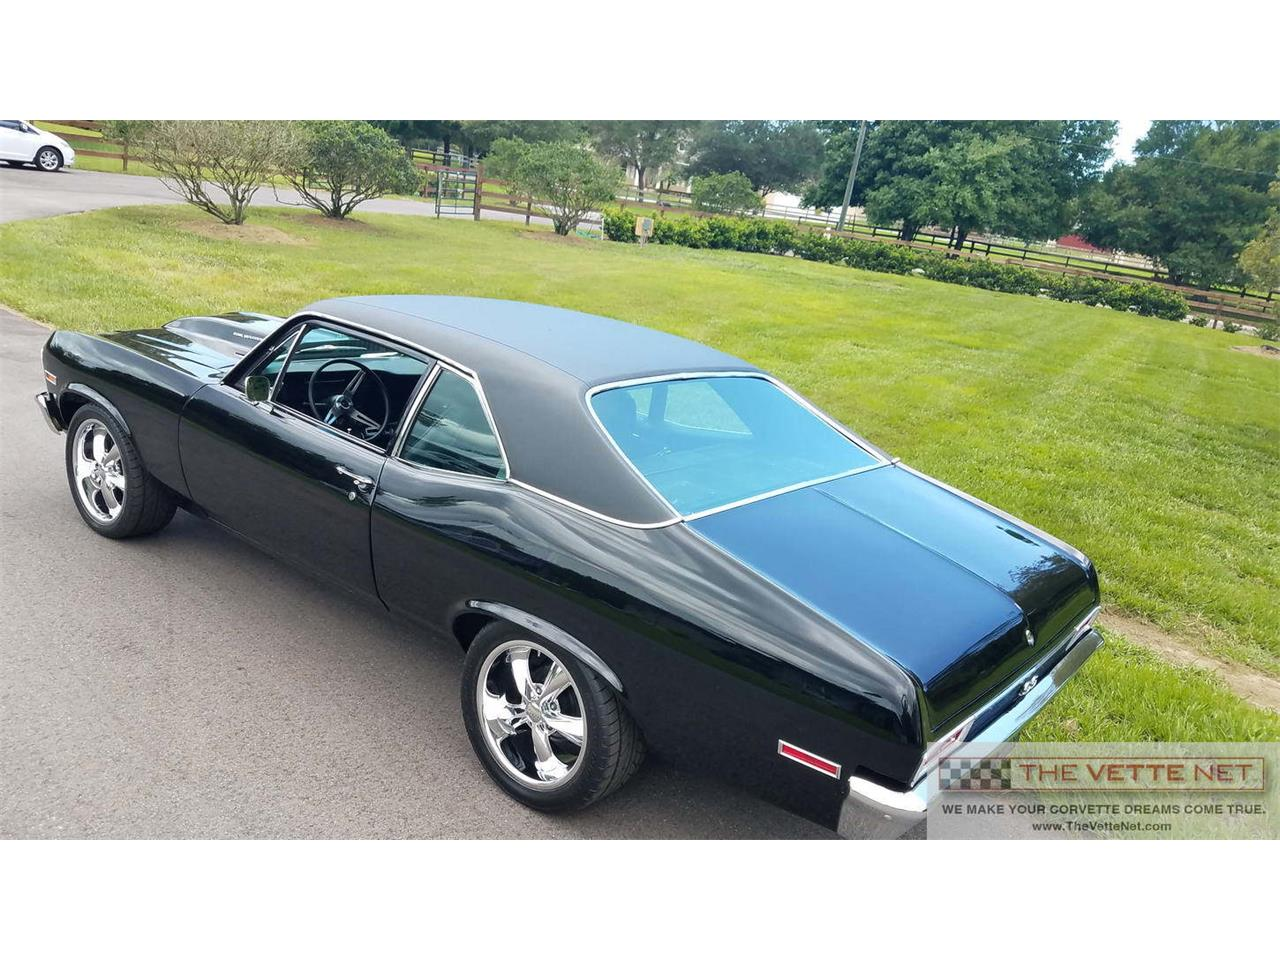 Large Picture of Classic '72 Chevrolet Nova located in Sarasota Florida - $25,990.00 Offered by The Vette Net - LCBP